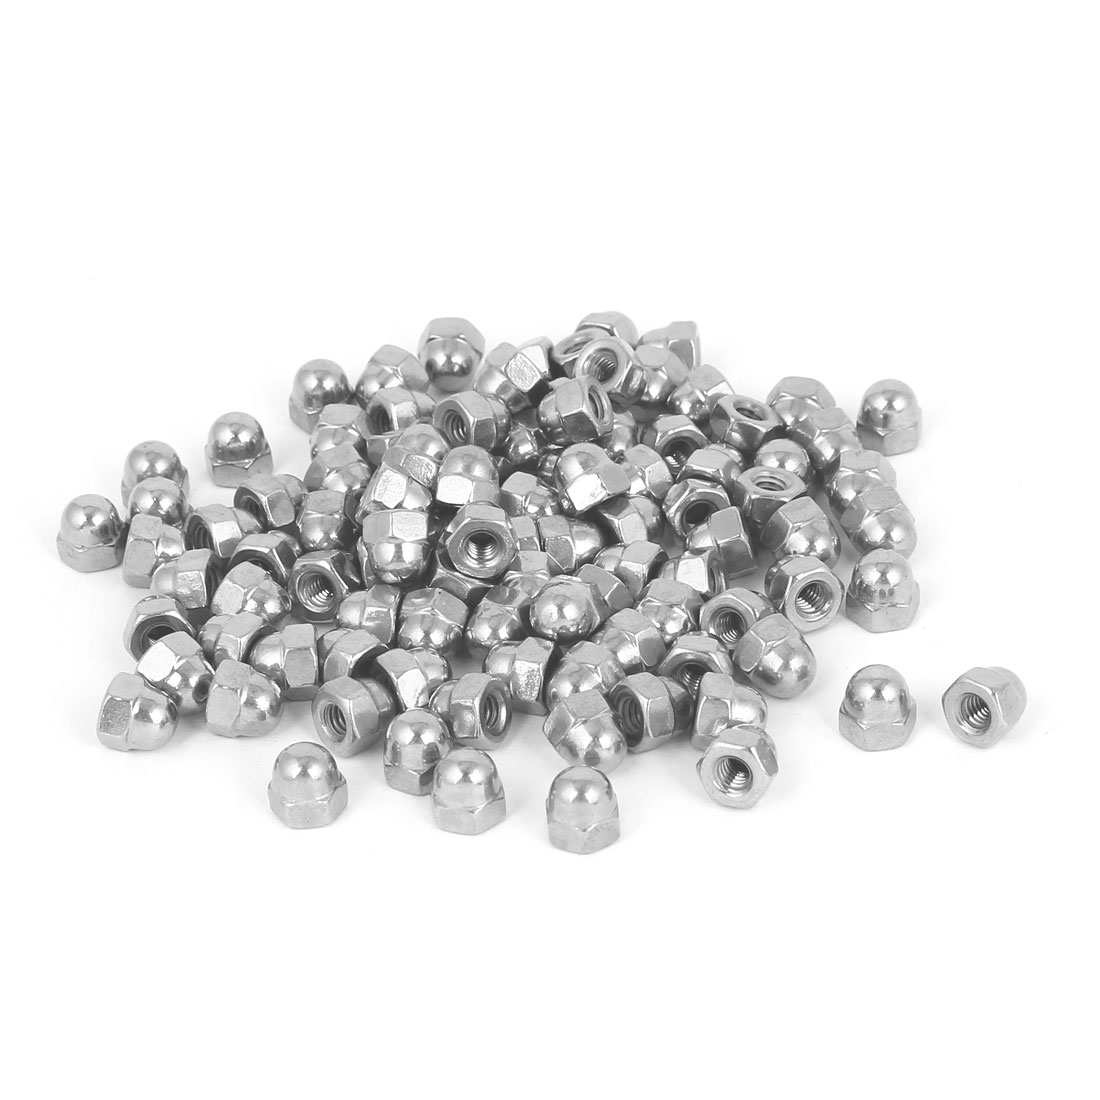 8#-32 304 Stainless Steel Dome Head Cap Hexagon Nuts Silver Tone 100pcs